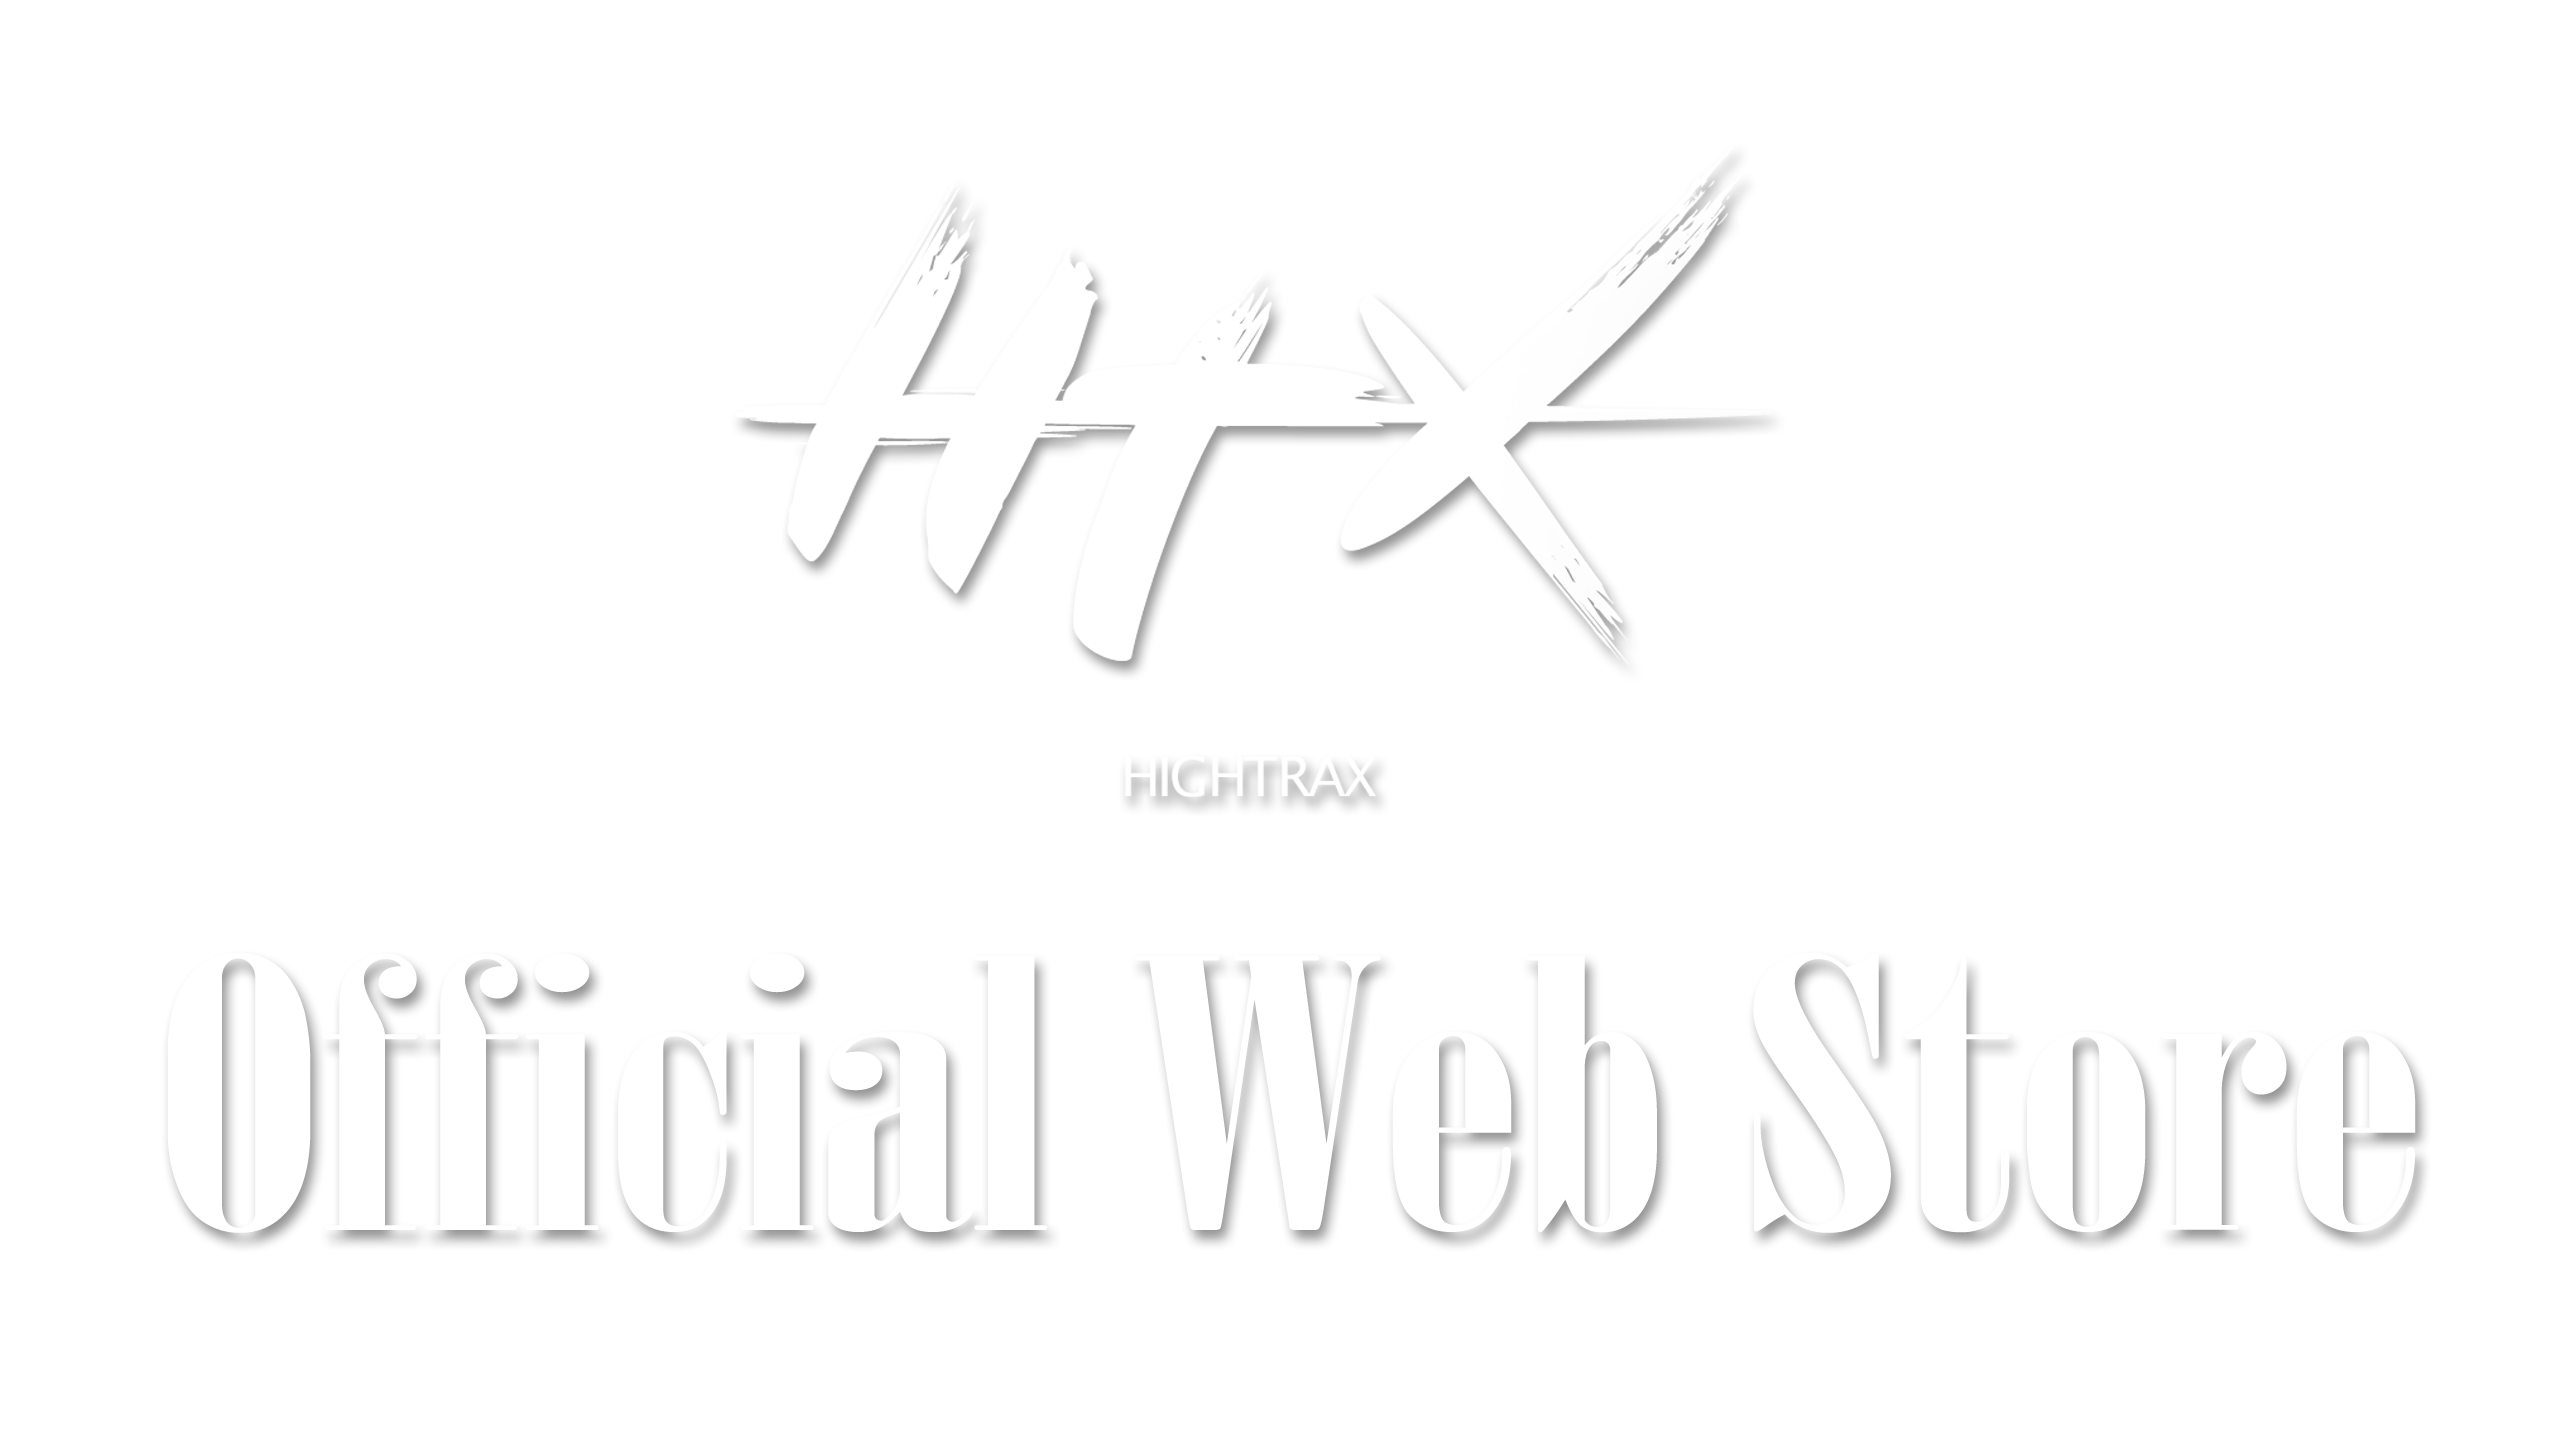 HIGHTRAX Official Web Store